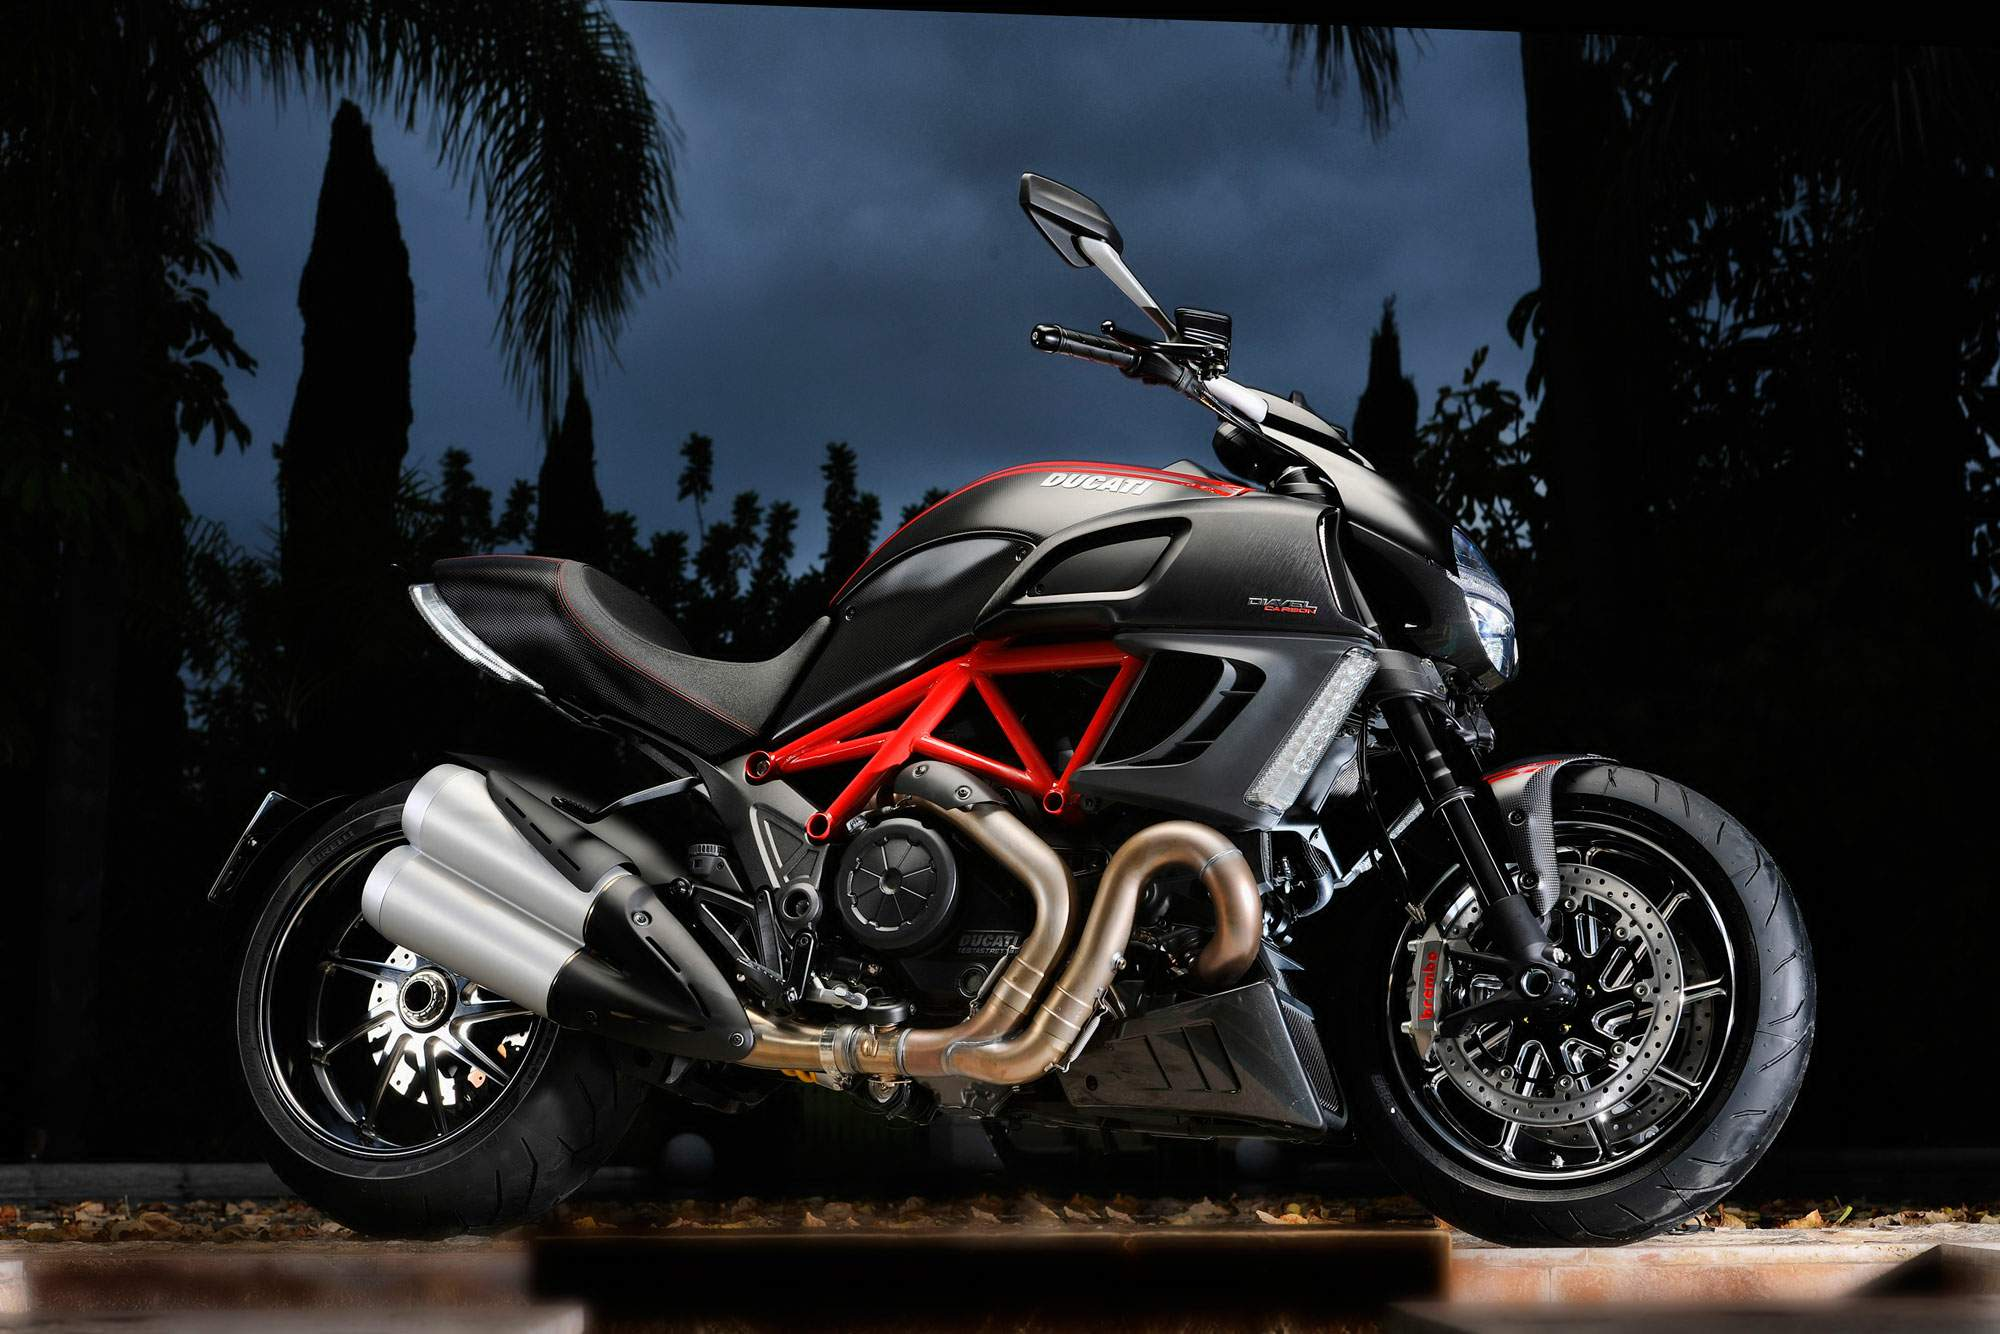 Мотоцикл Ducati Diavel Black Diamond 2011